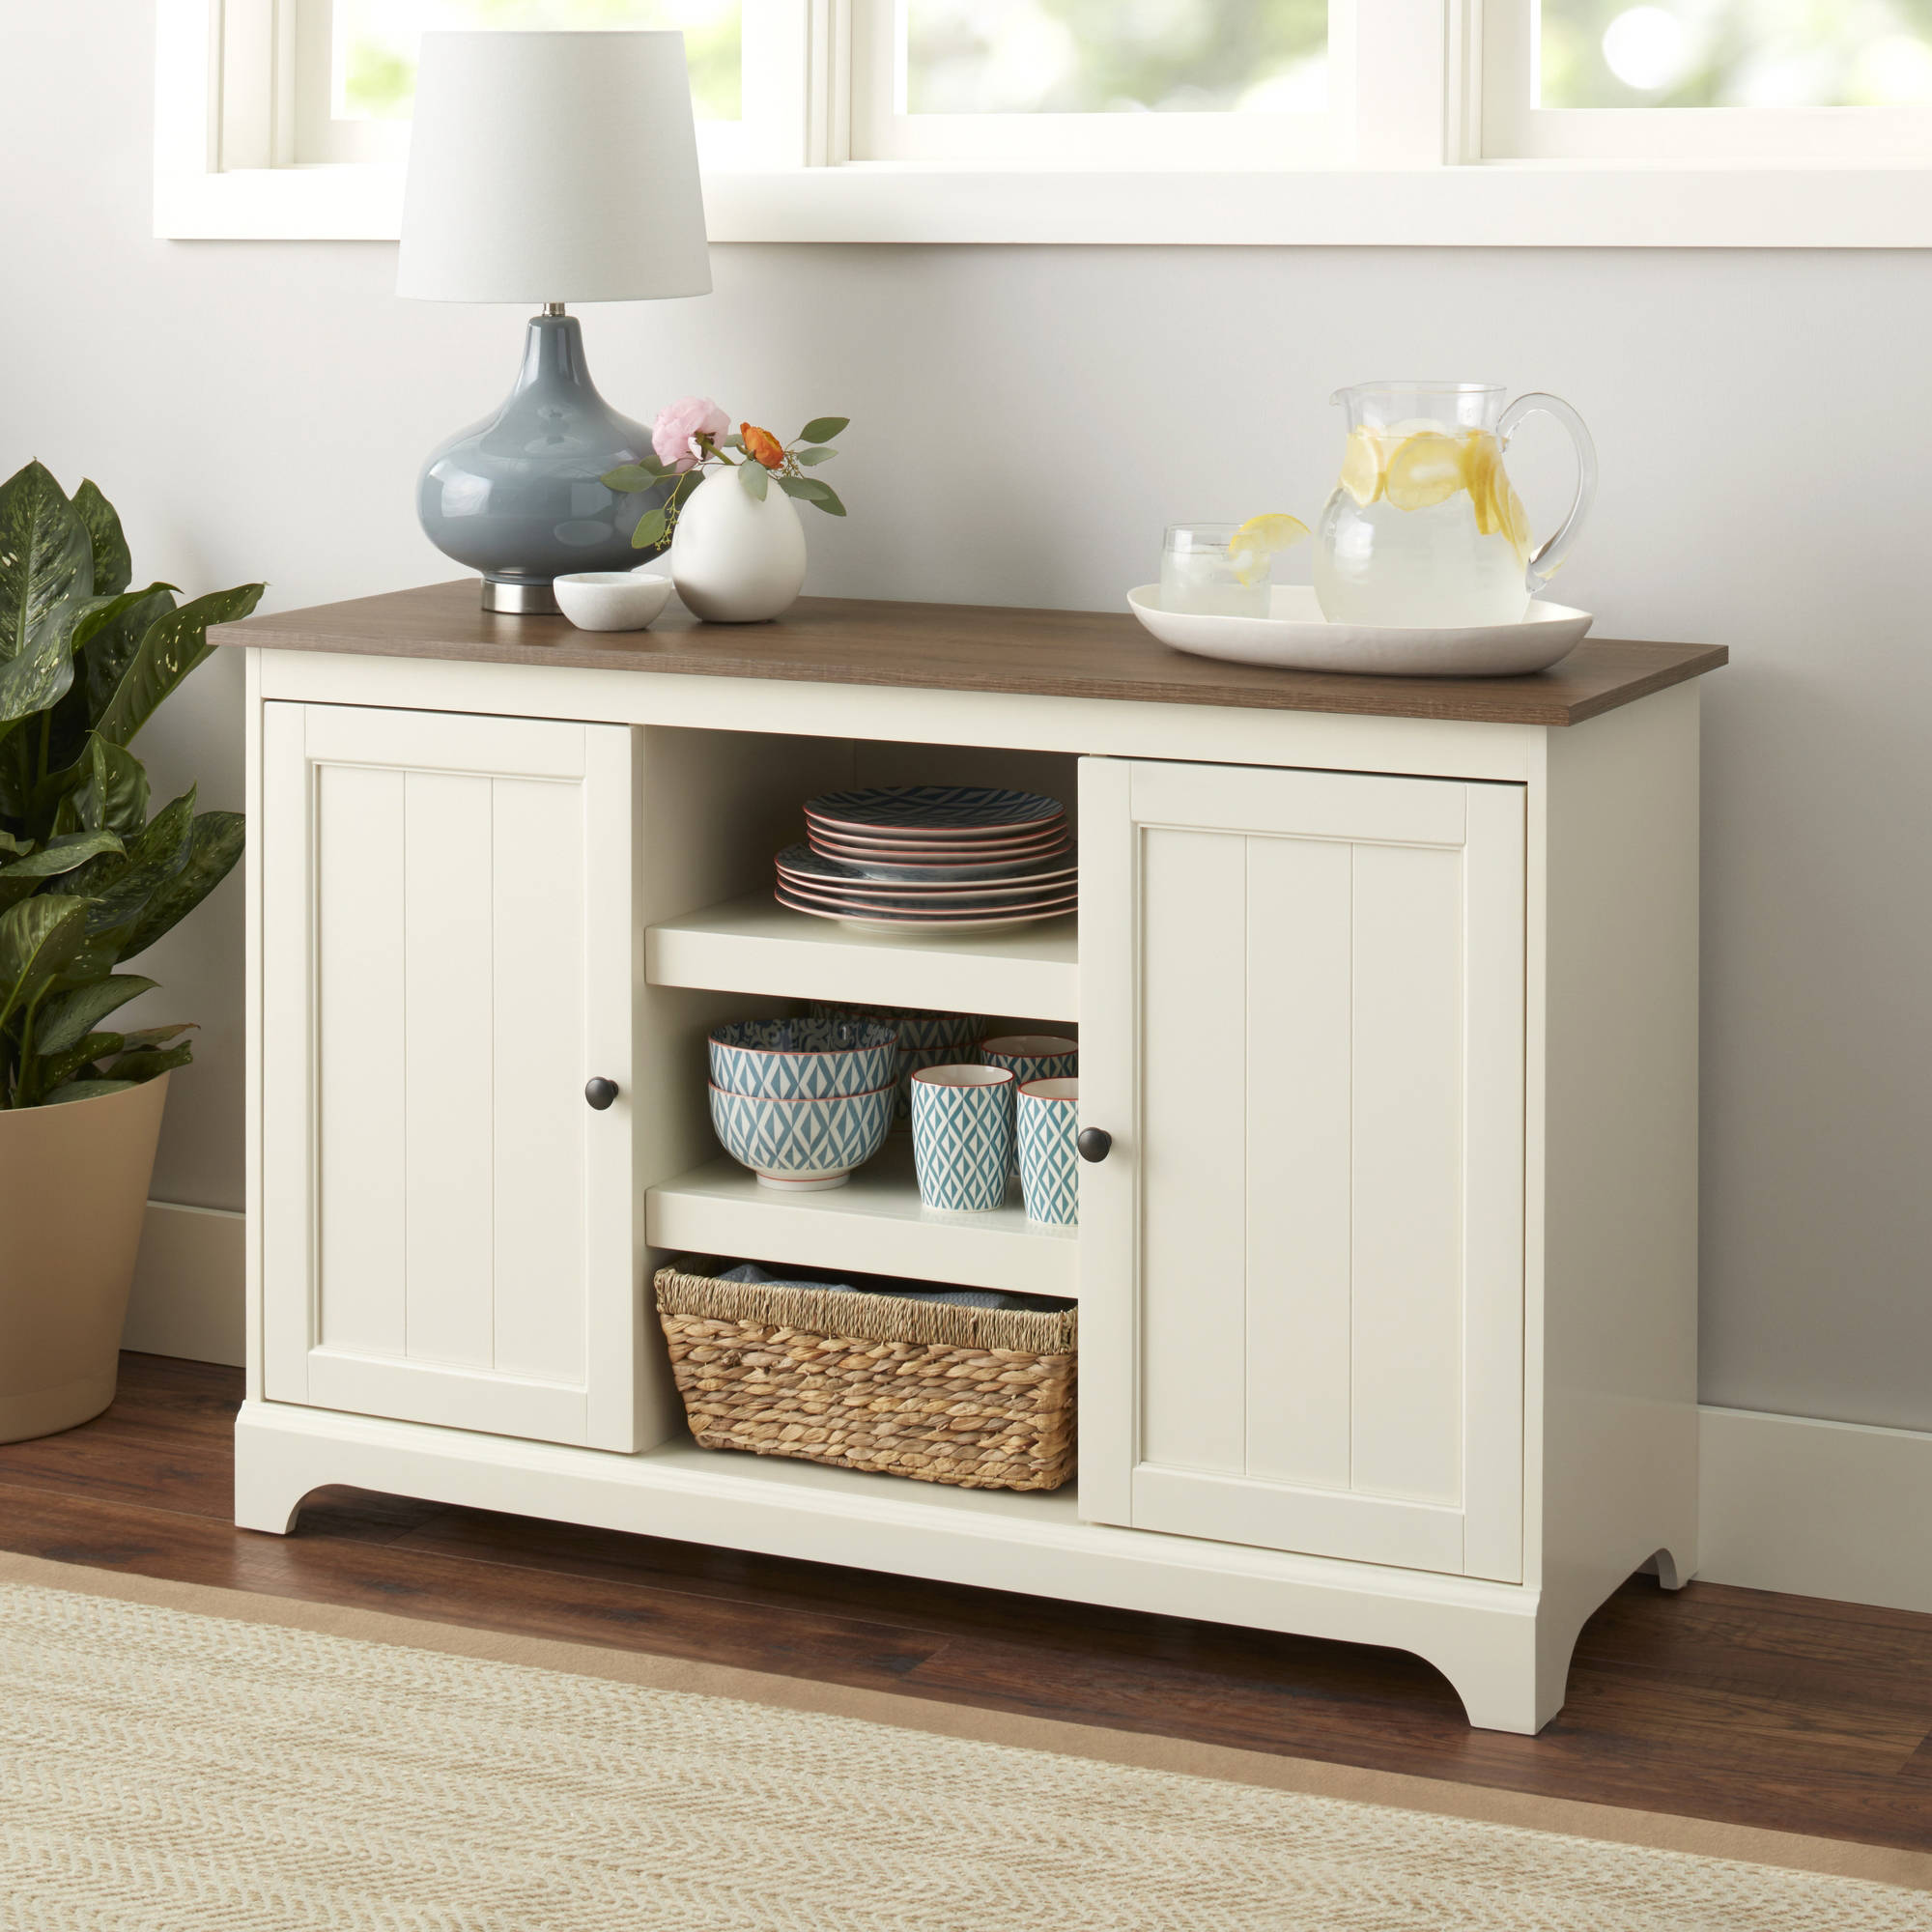 Better Homes and Gardens Kipling Credenza